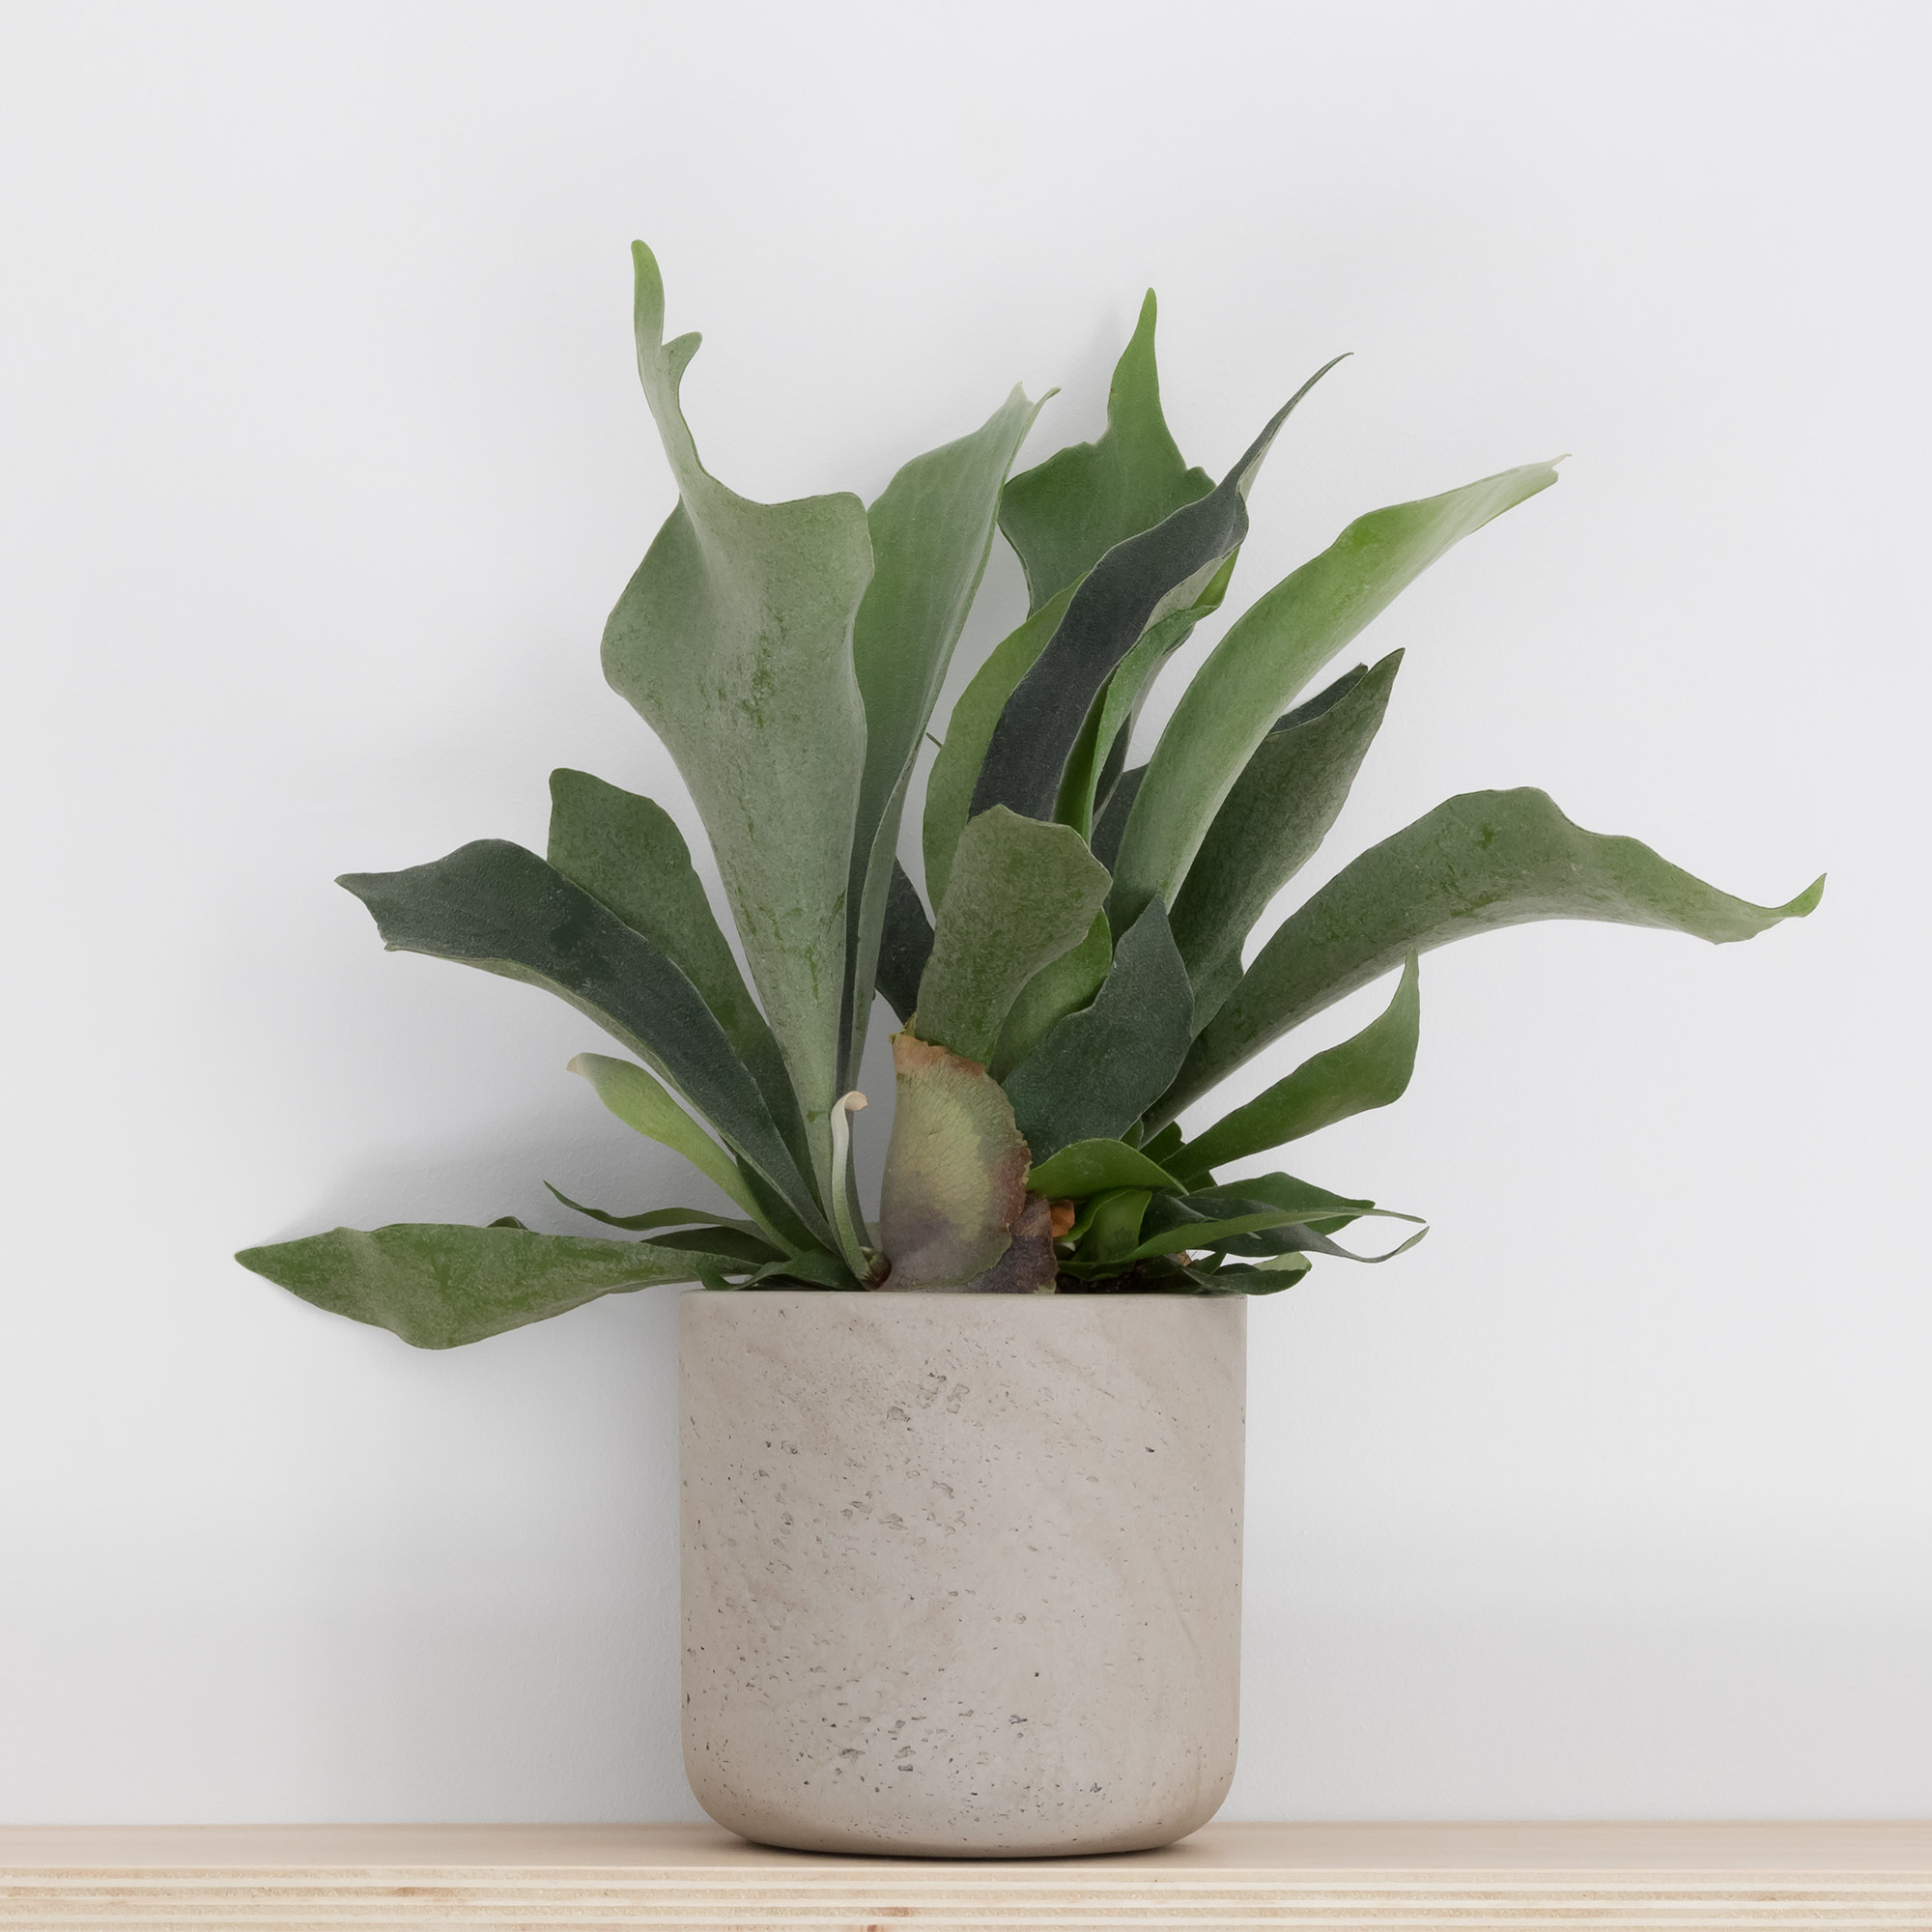 Staghorn fern in concrete planter on plywood shelf